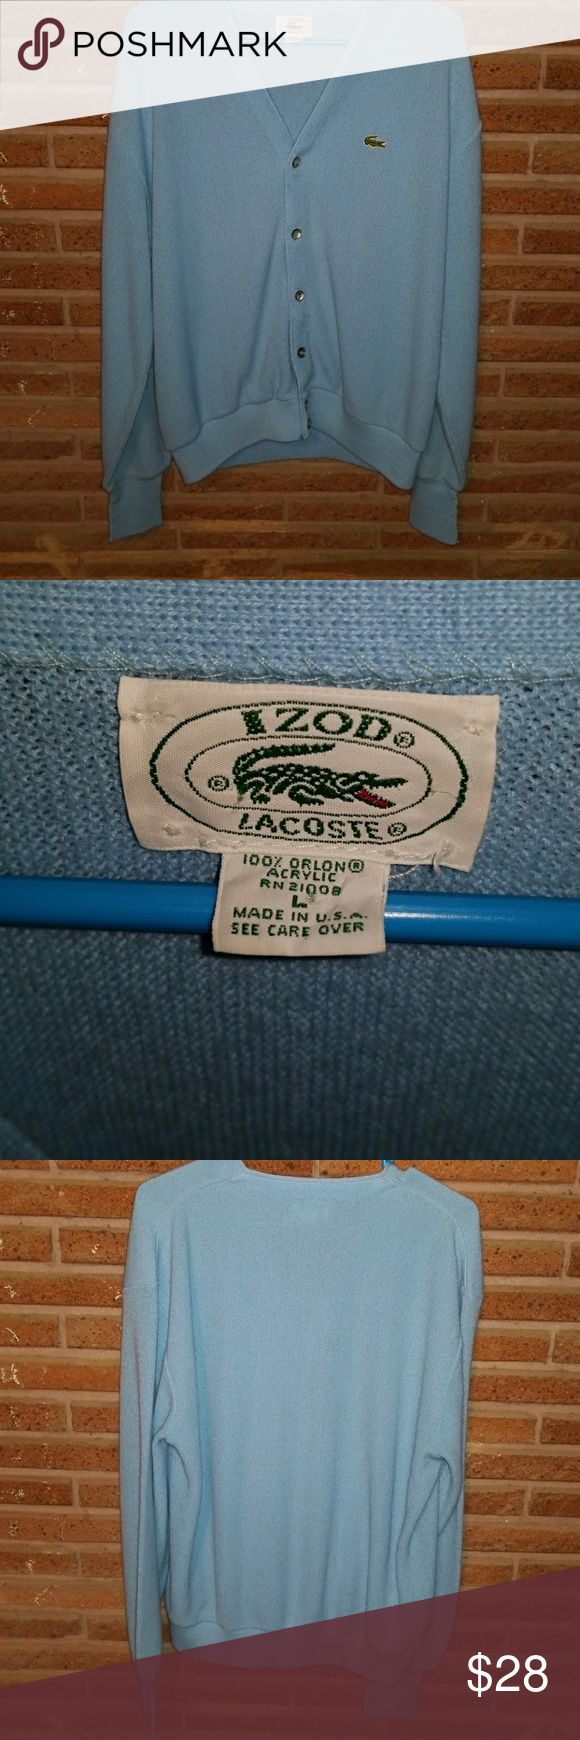 Izod Lacoste cardigan Great condition Izod Jackets & Coats